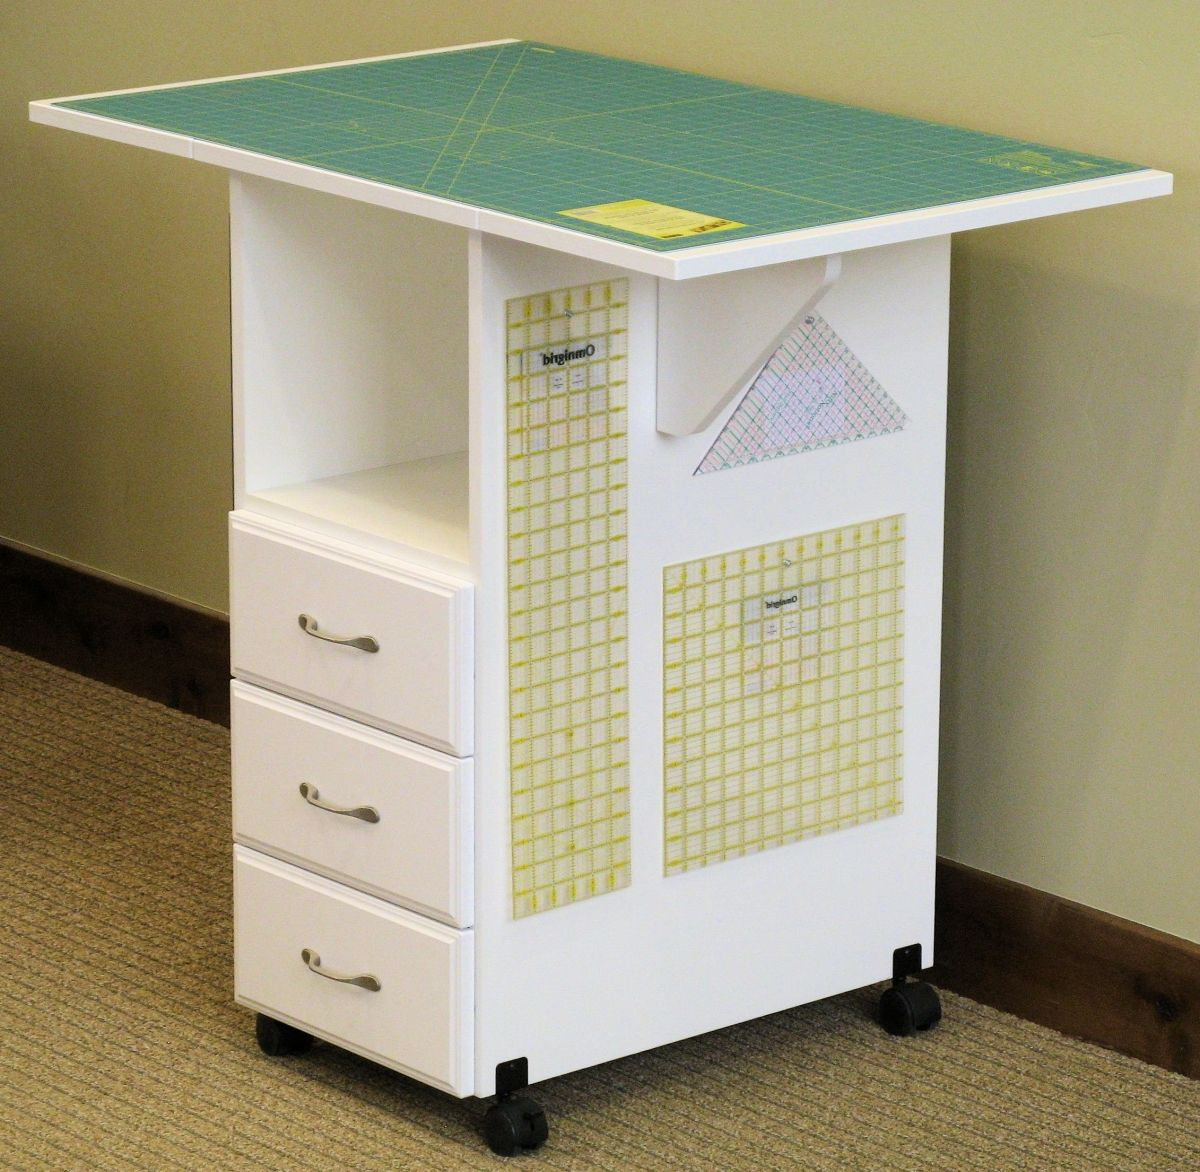 Craft Table With Wheels Yahoo Image Search Results Sewing Room Inspiration Craft Storage Drawers Sewing Furniture